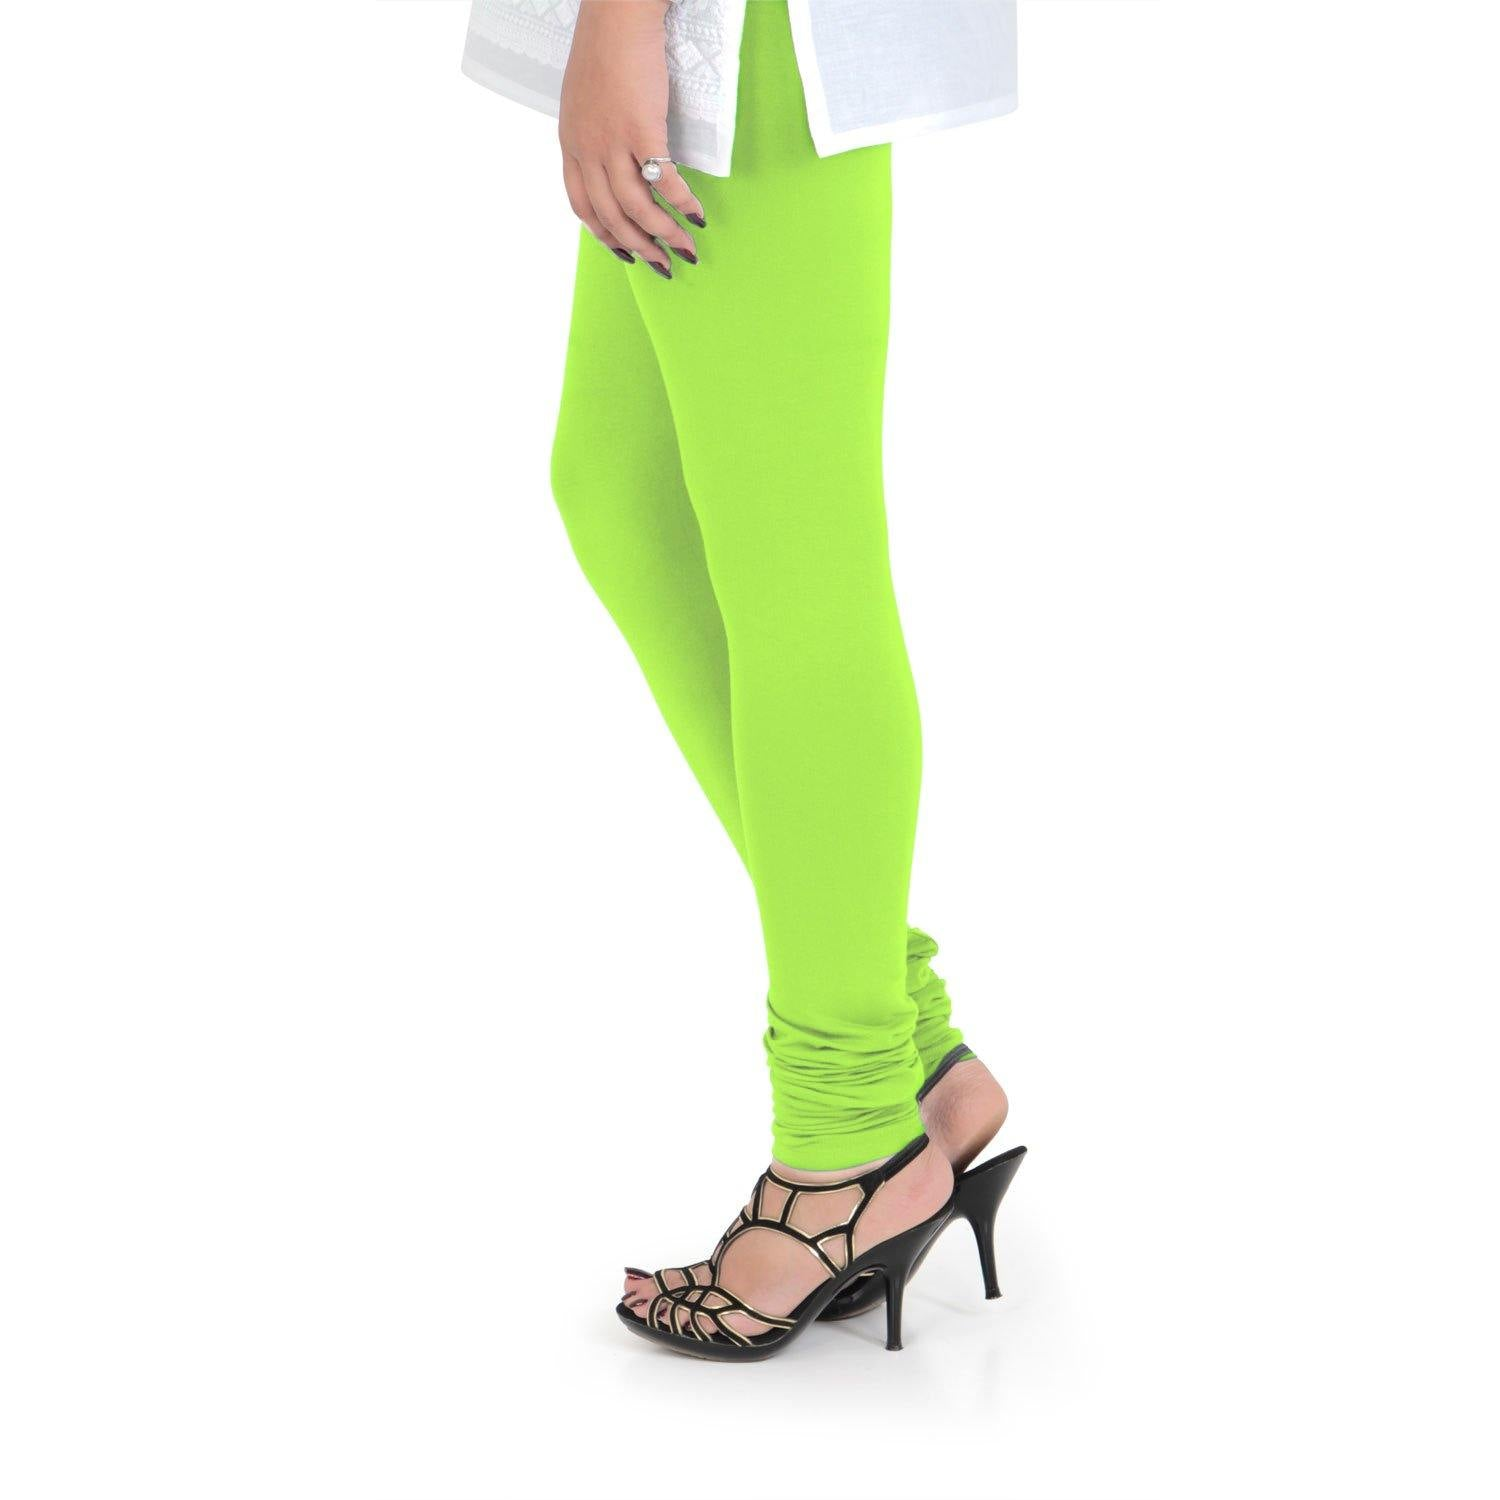 Vami Women's Cotton Stretchable Churidar Legging - Shocking Lime - Bonjour Group